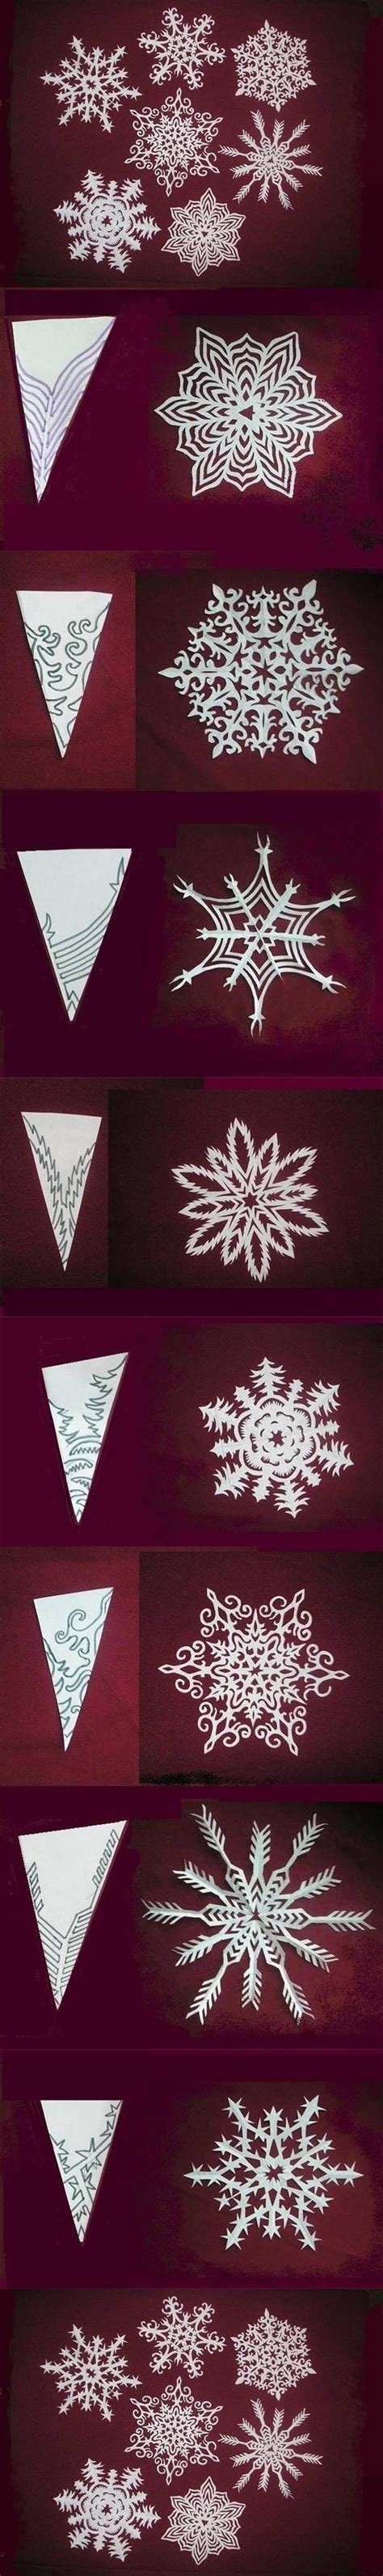 Paper Snowflakes Patterns - diy snowflakes paper pattern paper